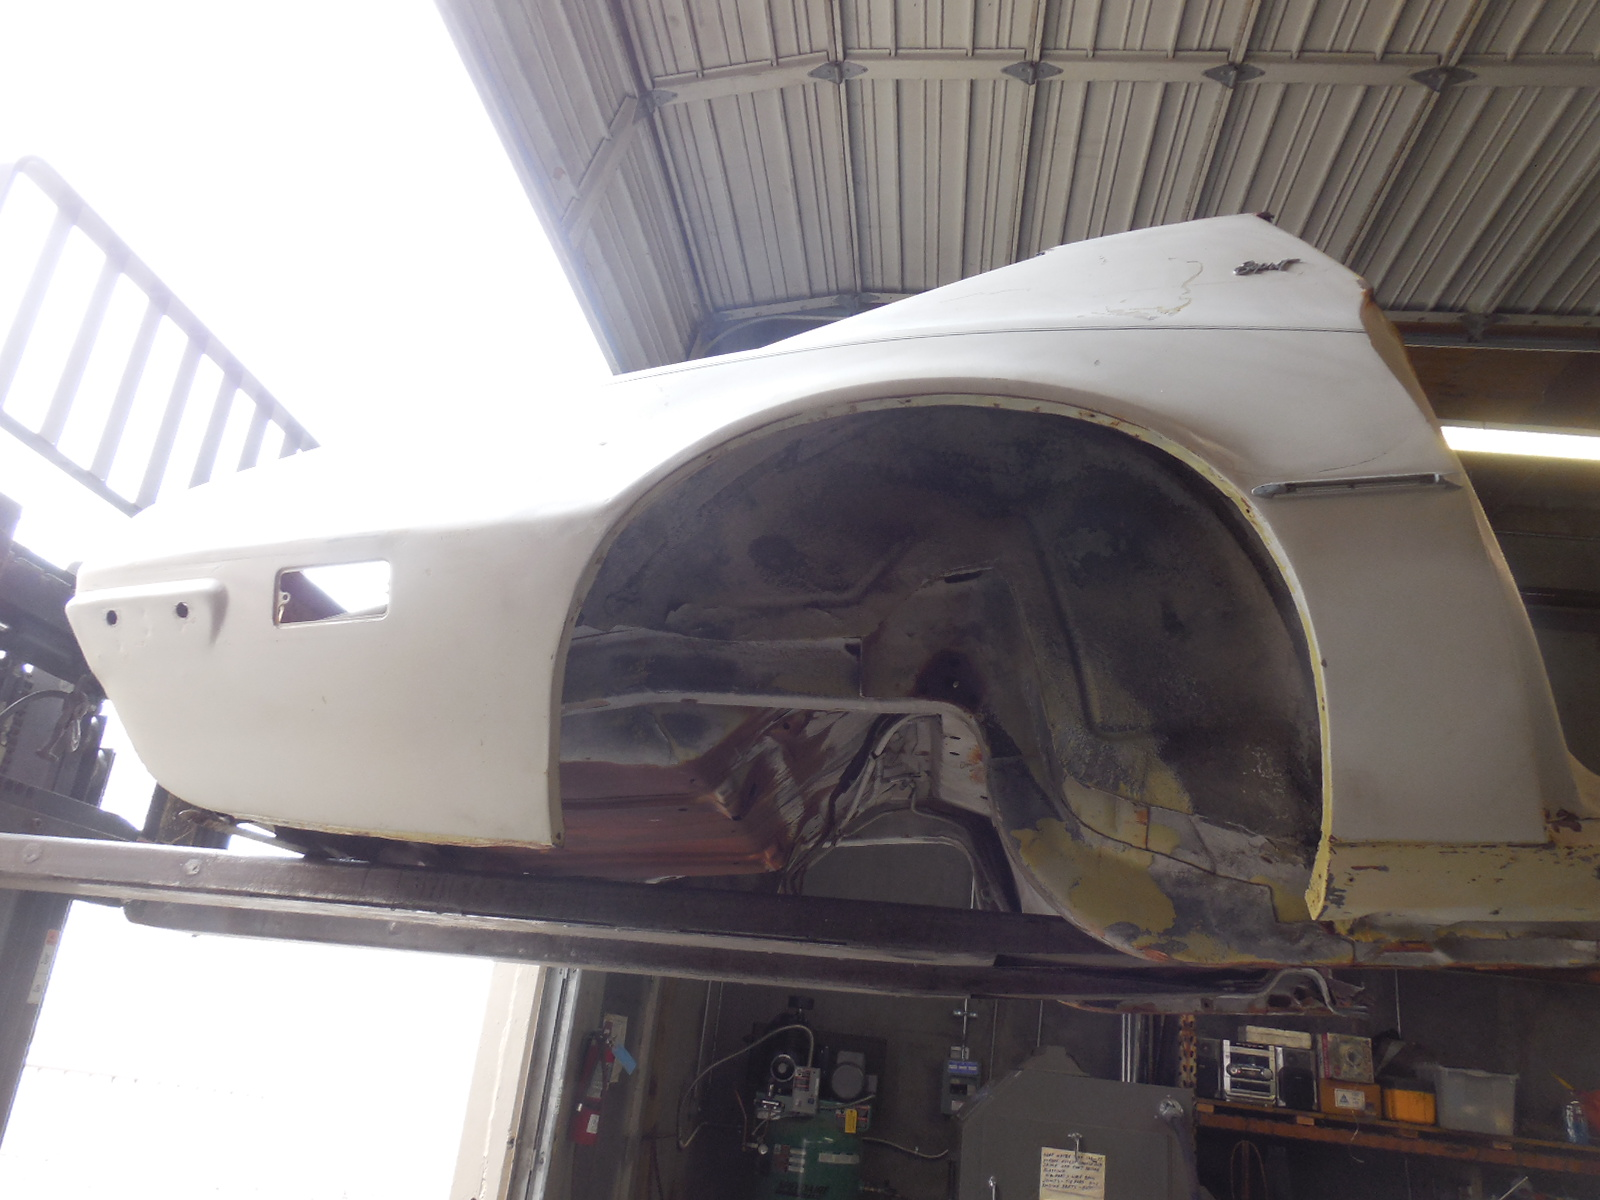 1970, 1971, 1972, 1973, quarter panel, quarter panels , left, right,2nd Gen, Pontiac, Trans Am, Firebird, Rear Clip, Quarter Panel